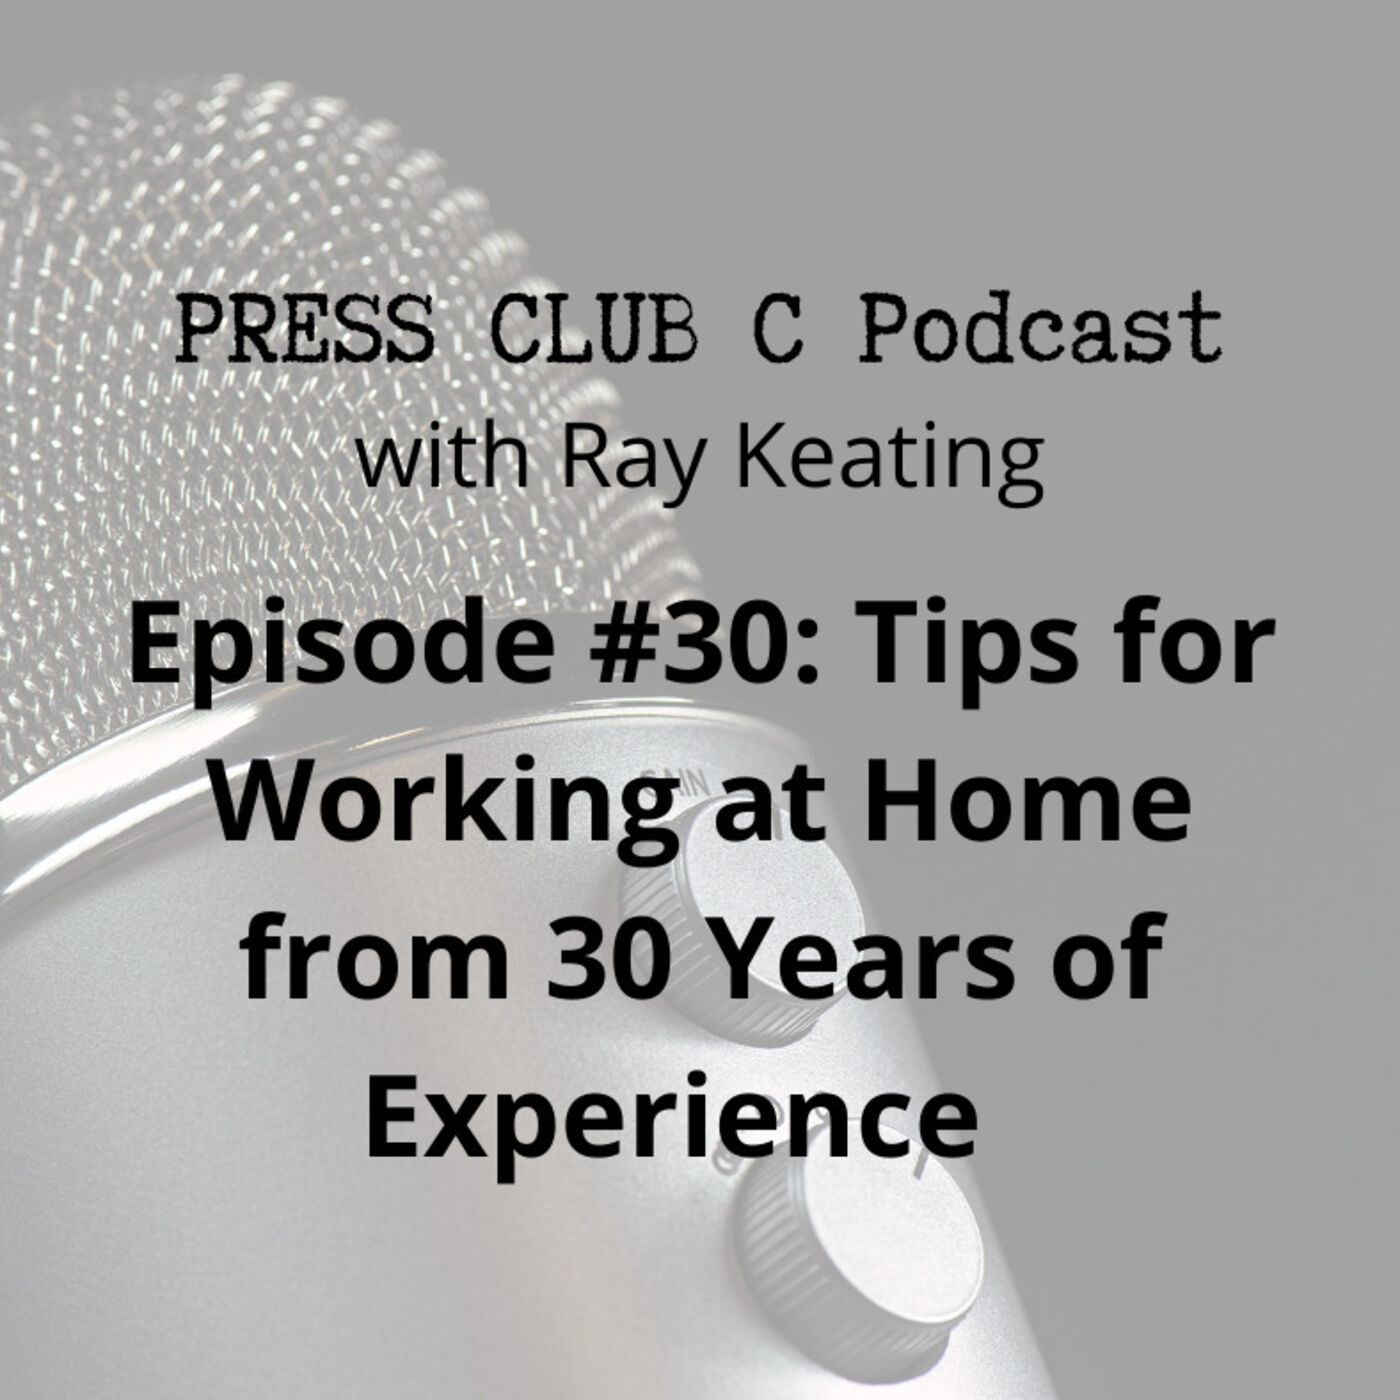 Episode #30: Tips for Working at Home from 30 Years of Experience